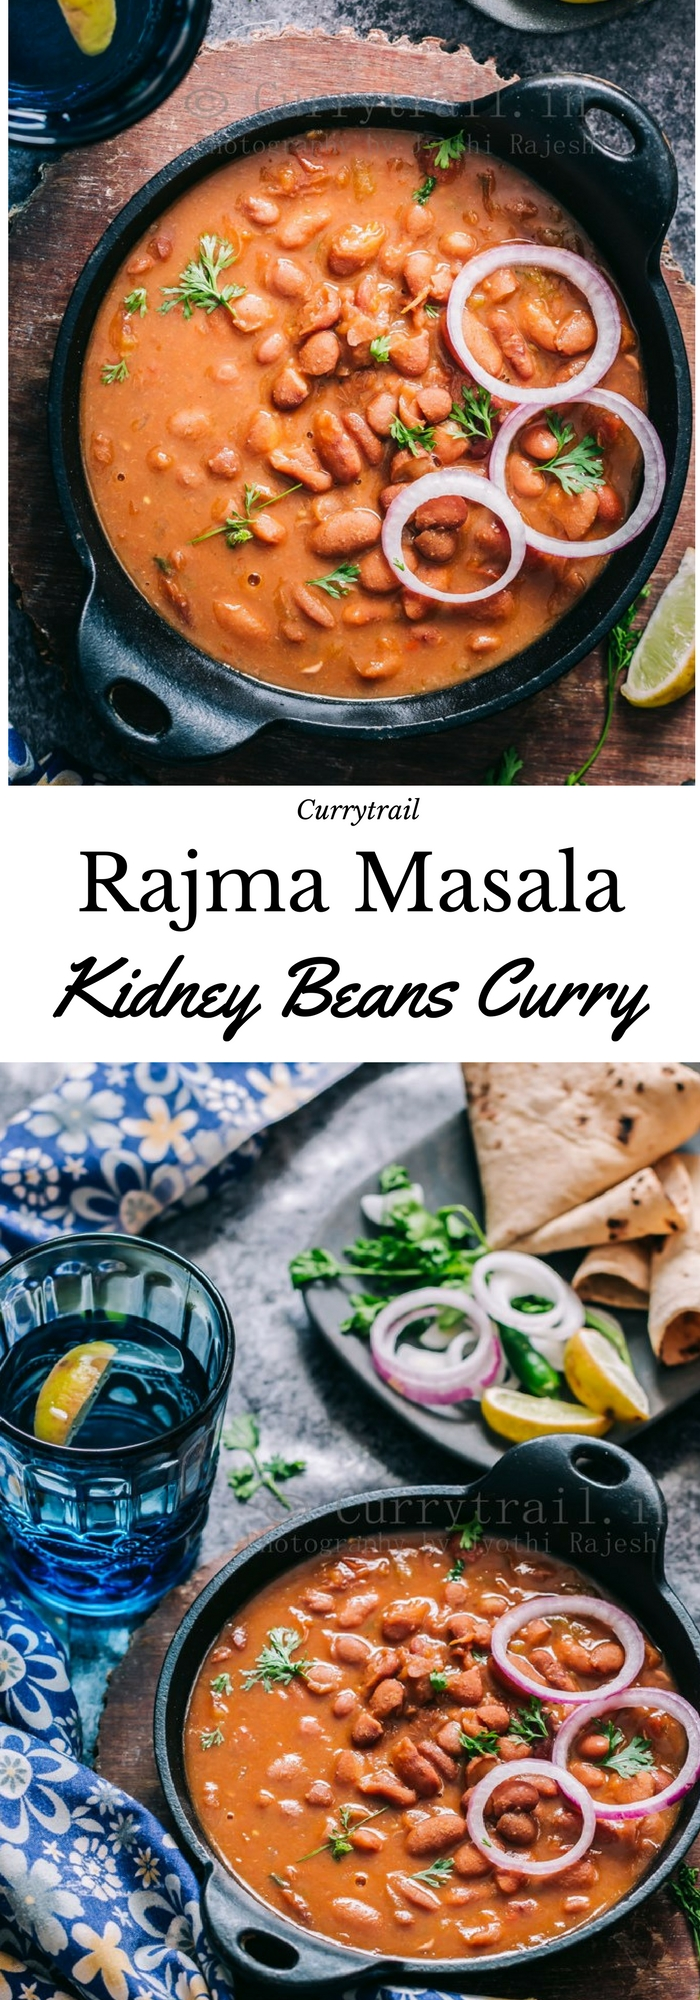 rajma masala is rich, creamy, spicy red bean curry served in cast iron pan with text overlay